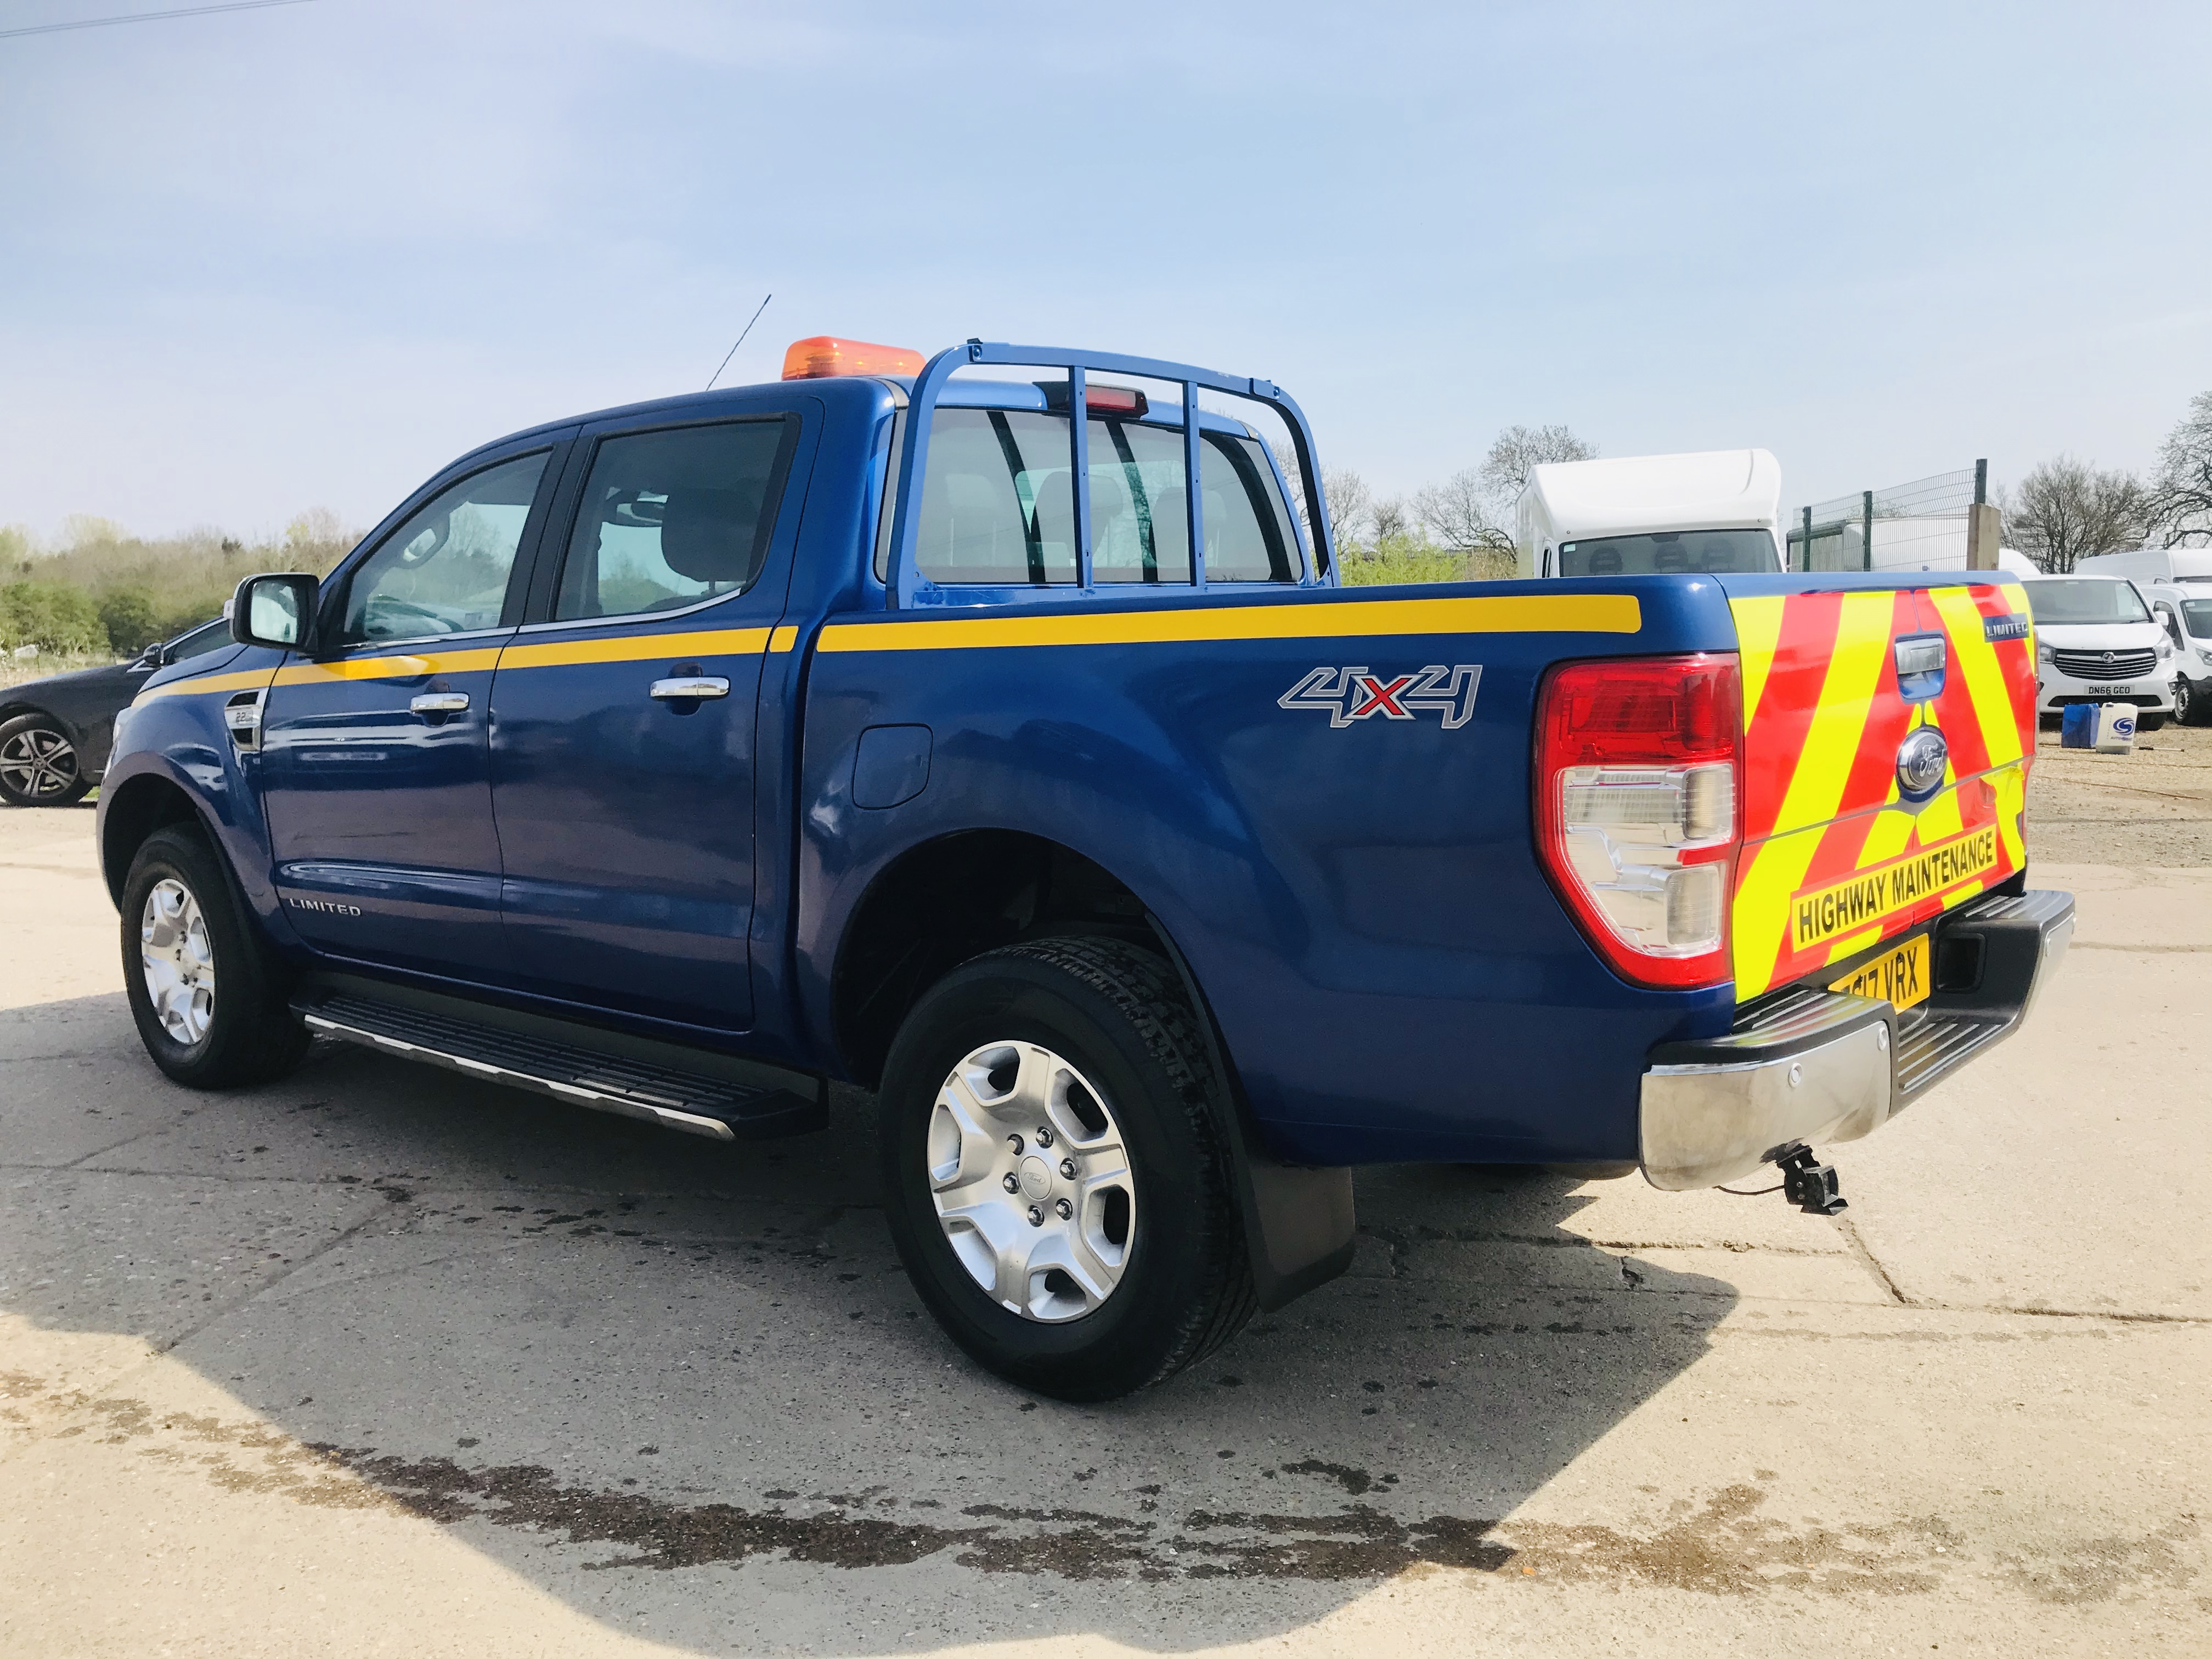 """ON SALE FORD RANGER 2.2TDCI """"LIMITED"""" D/C PICK UP (17 REG) 1 OWNER FSH - FULL LEATHER - CLIMATE & AC - Image 9 of 38"""